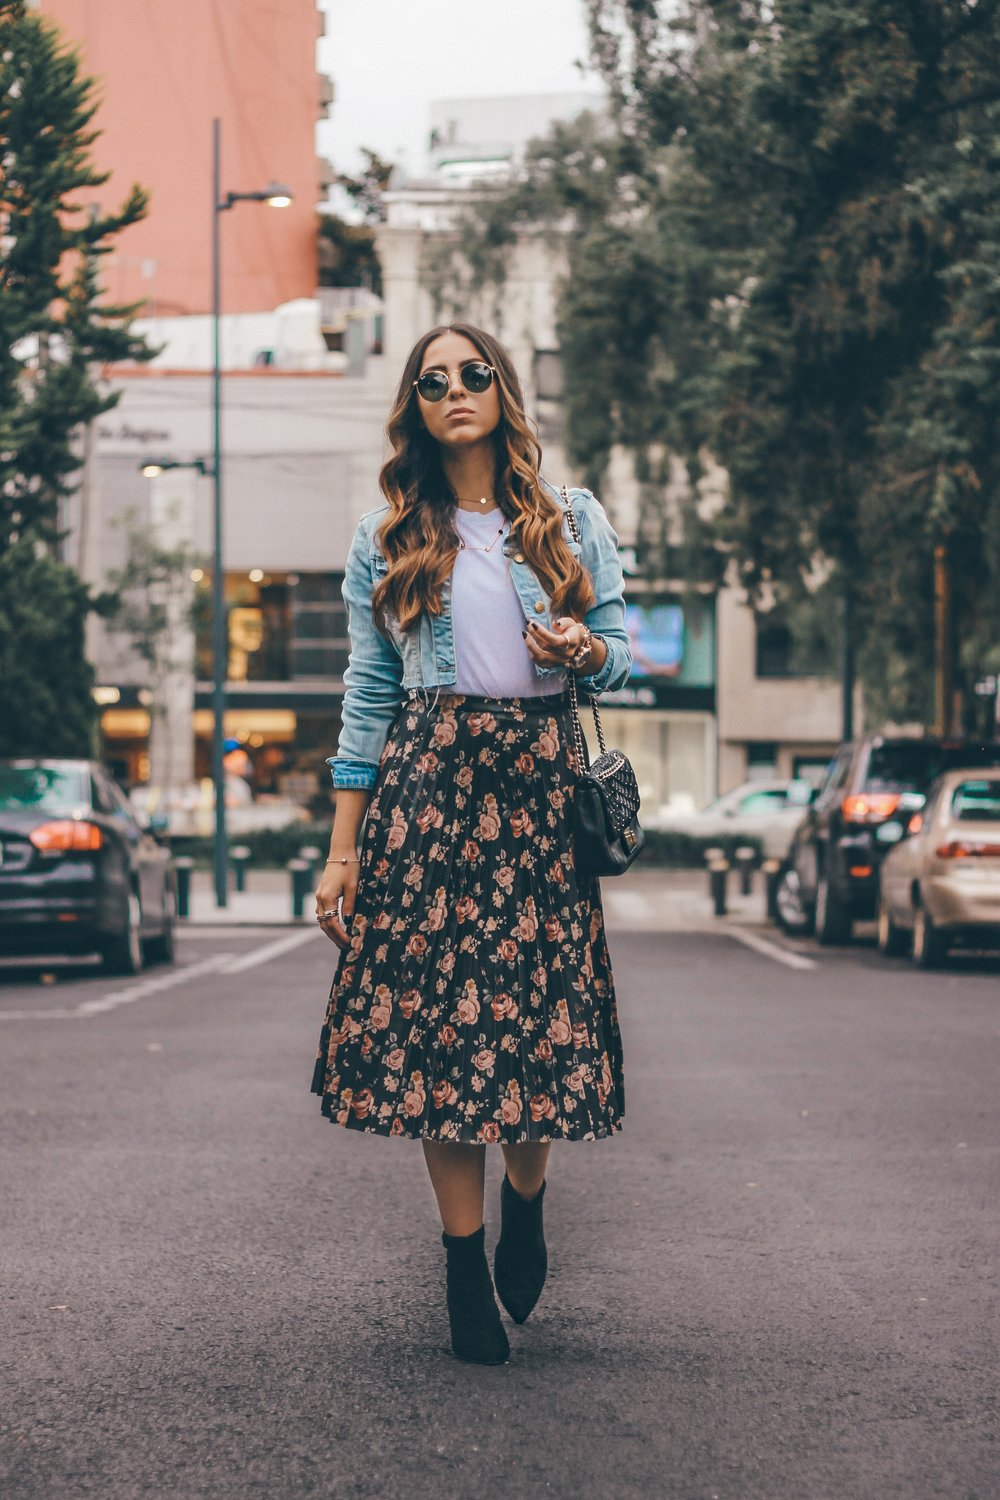 skirt-looks-denim-jacket-boots